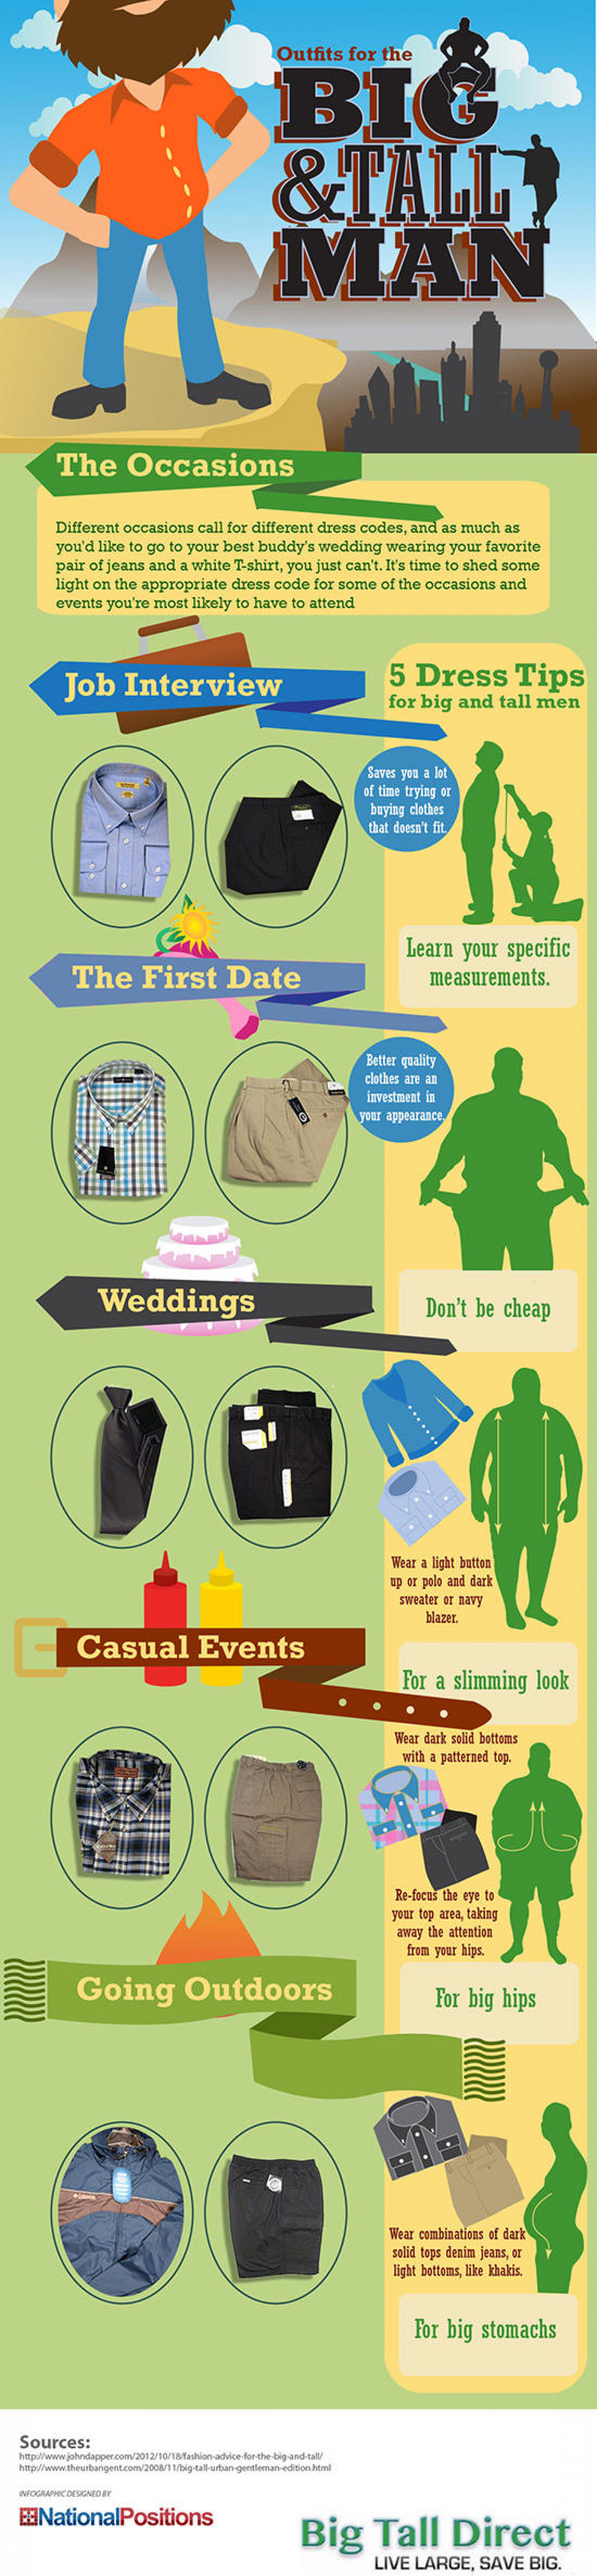 Dress Tips for Big & Tall Men Infographic